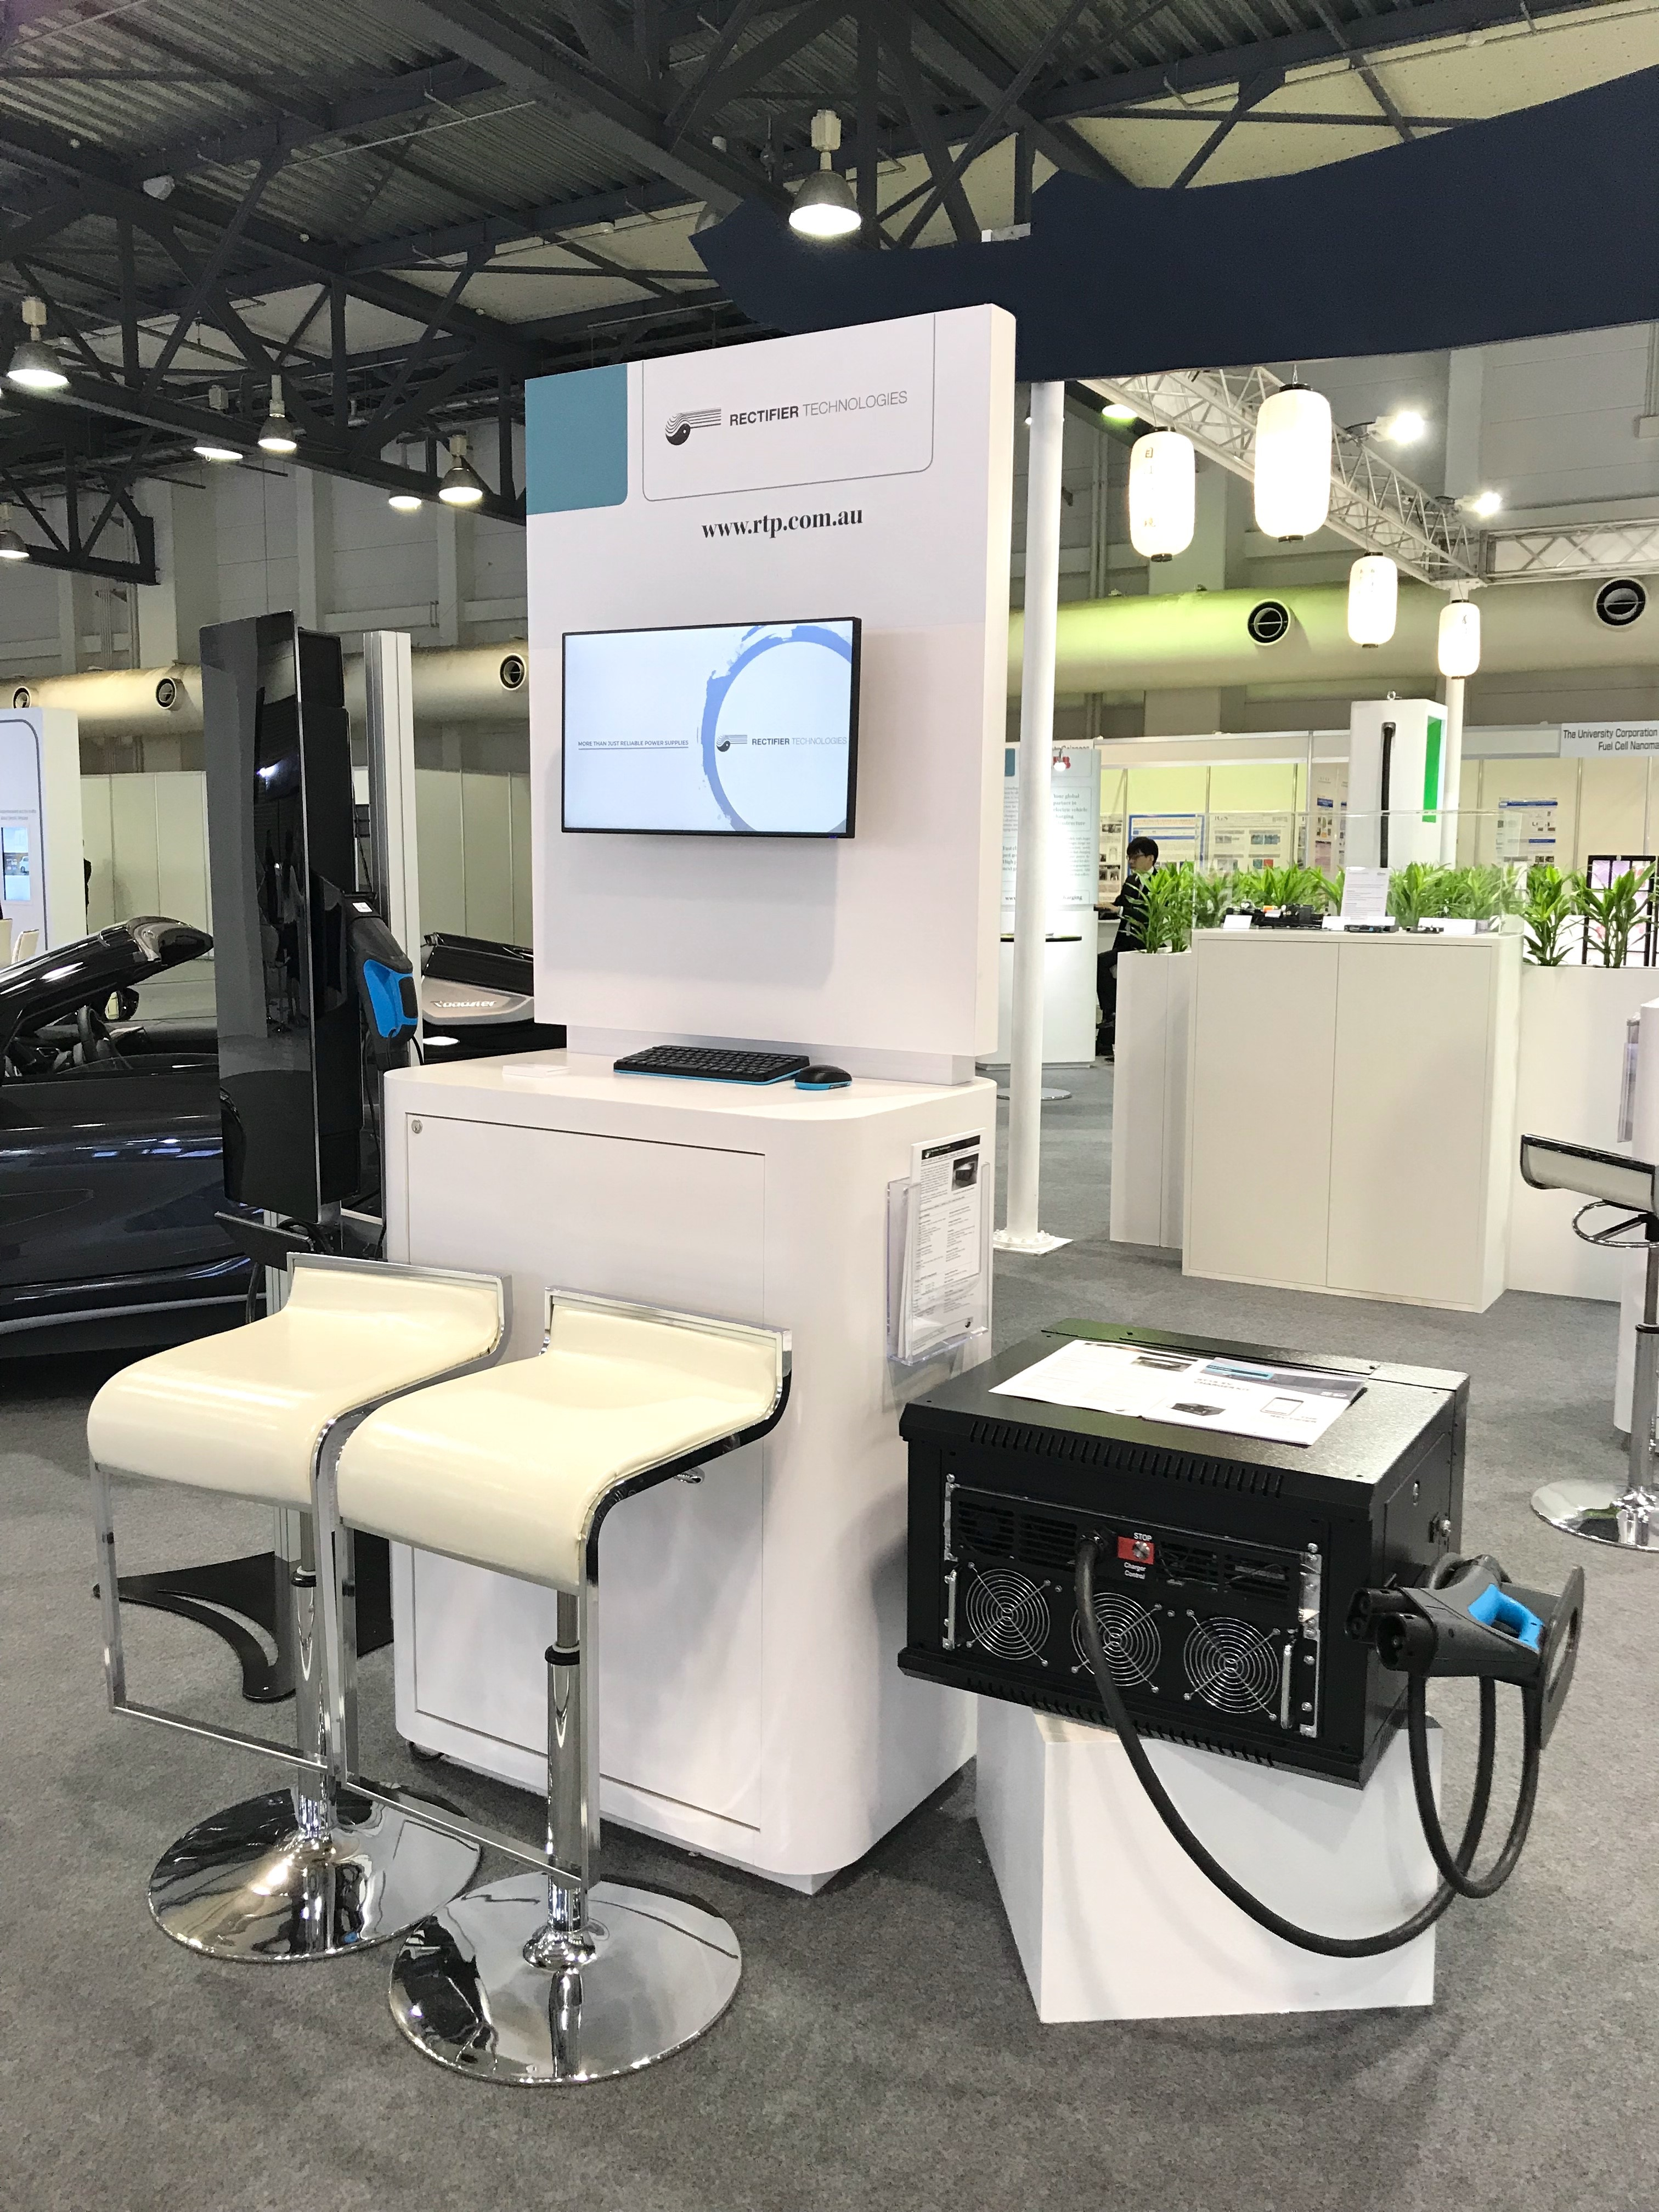 EVS31 Rectifier Technologies Booth